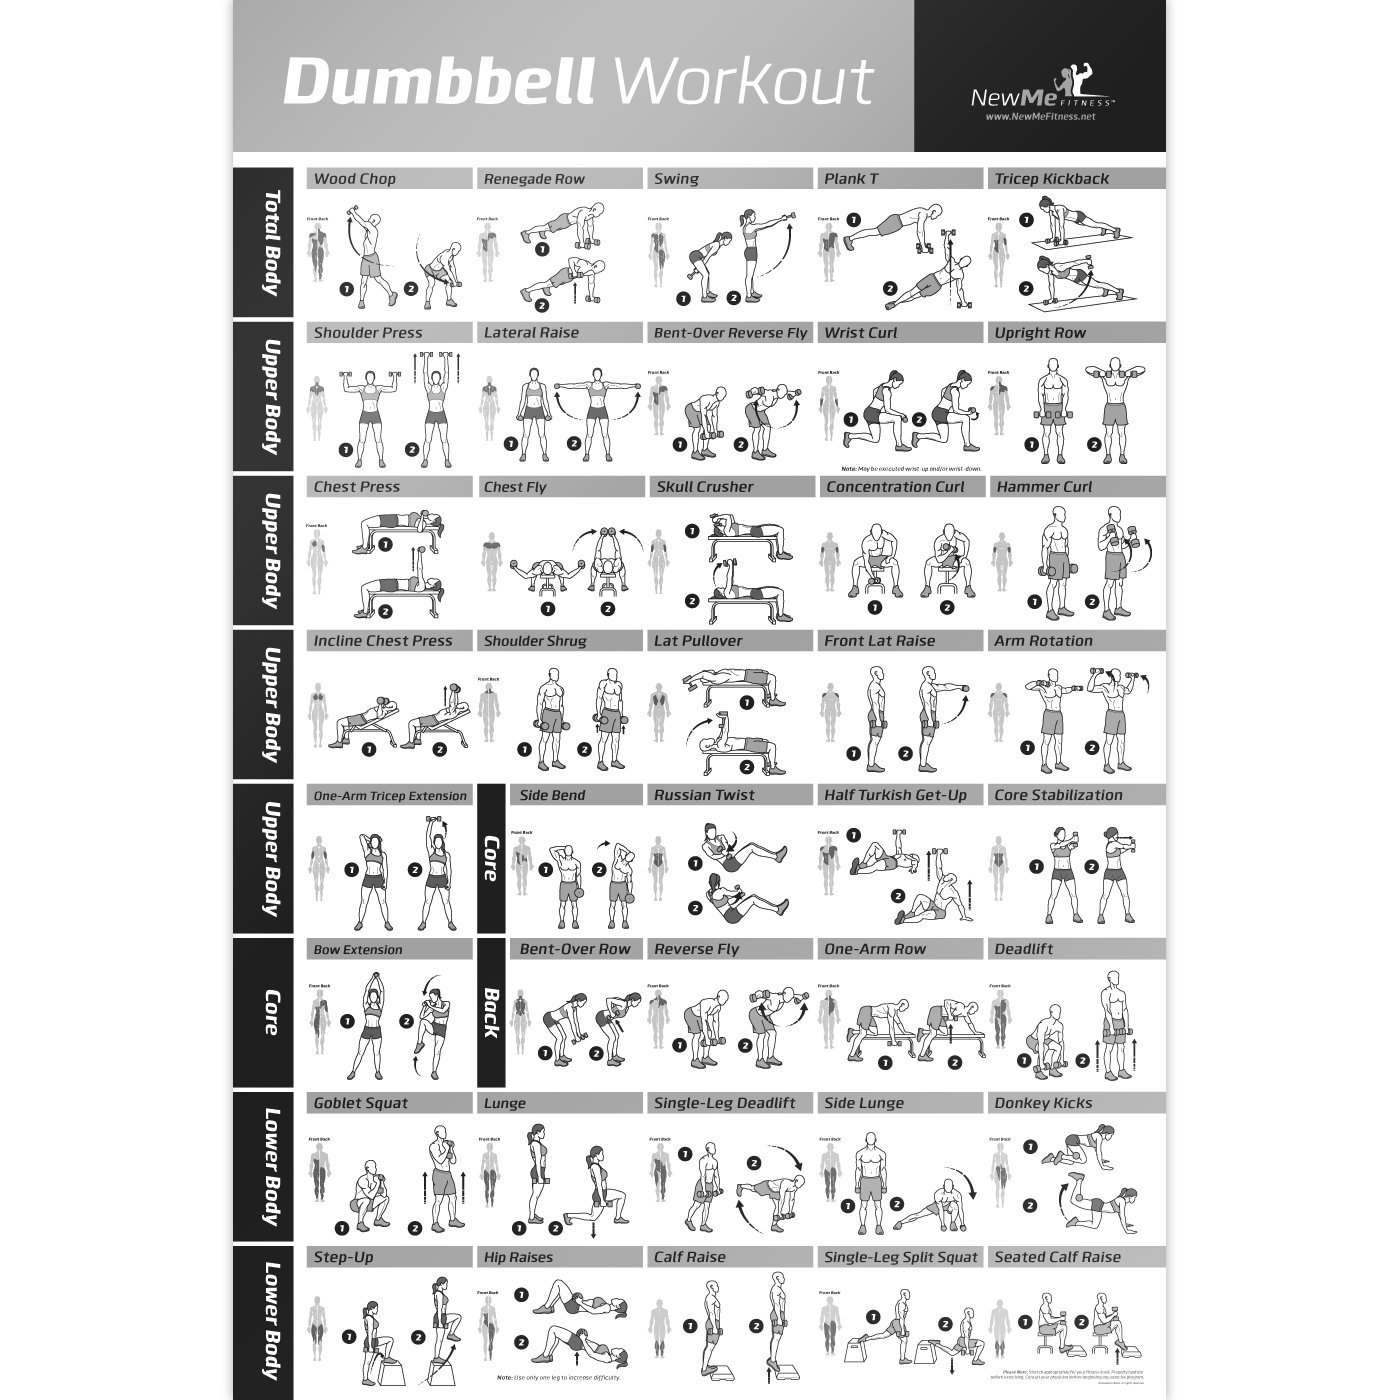 Strength Training: Dumbbell Workout Exercise Poster